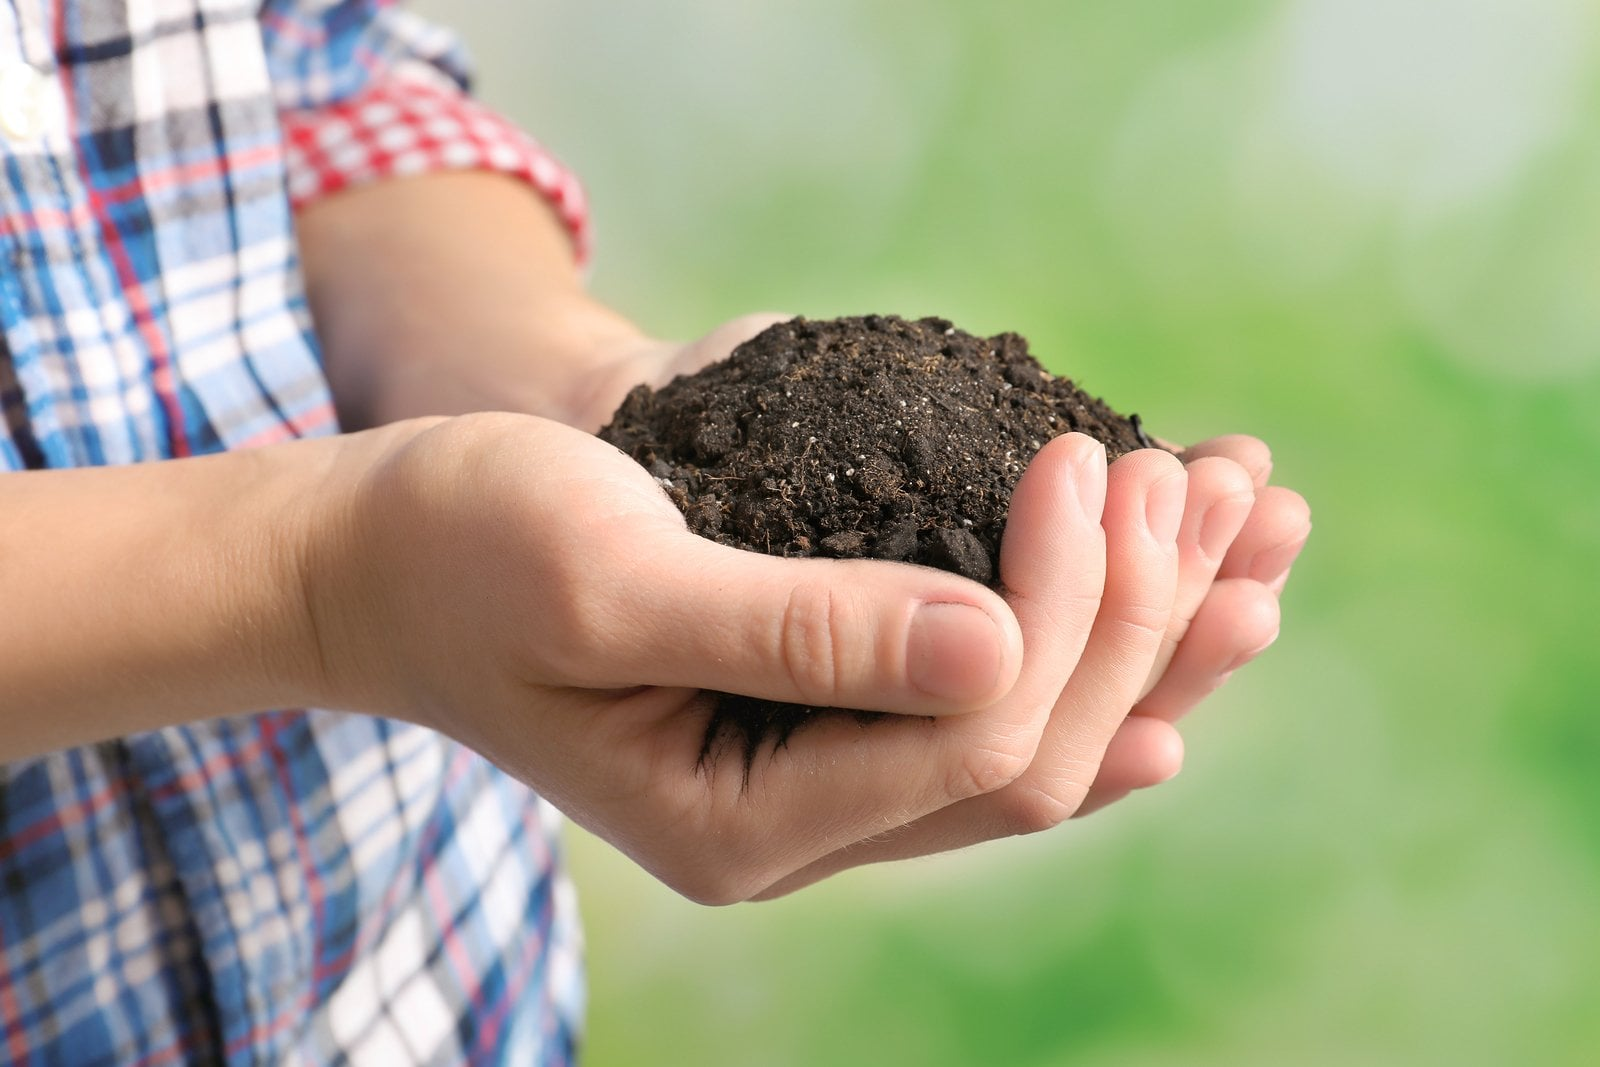 is soil destroying your health